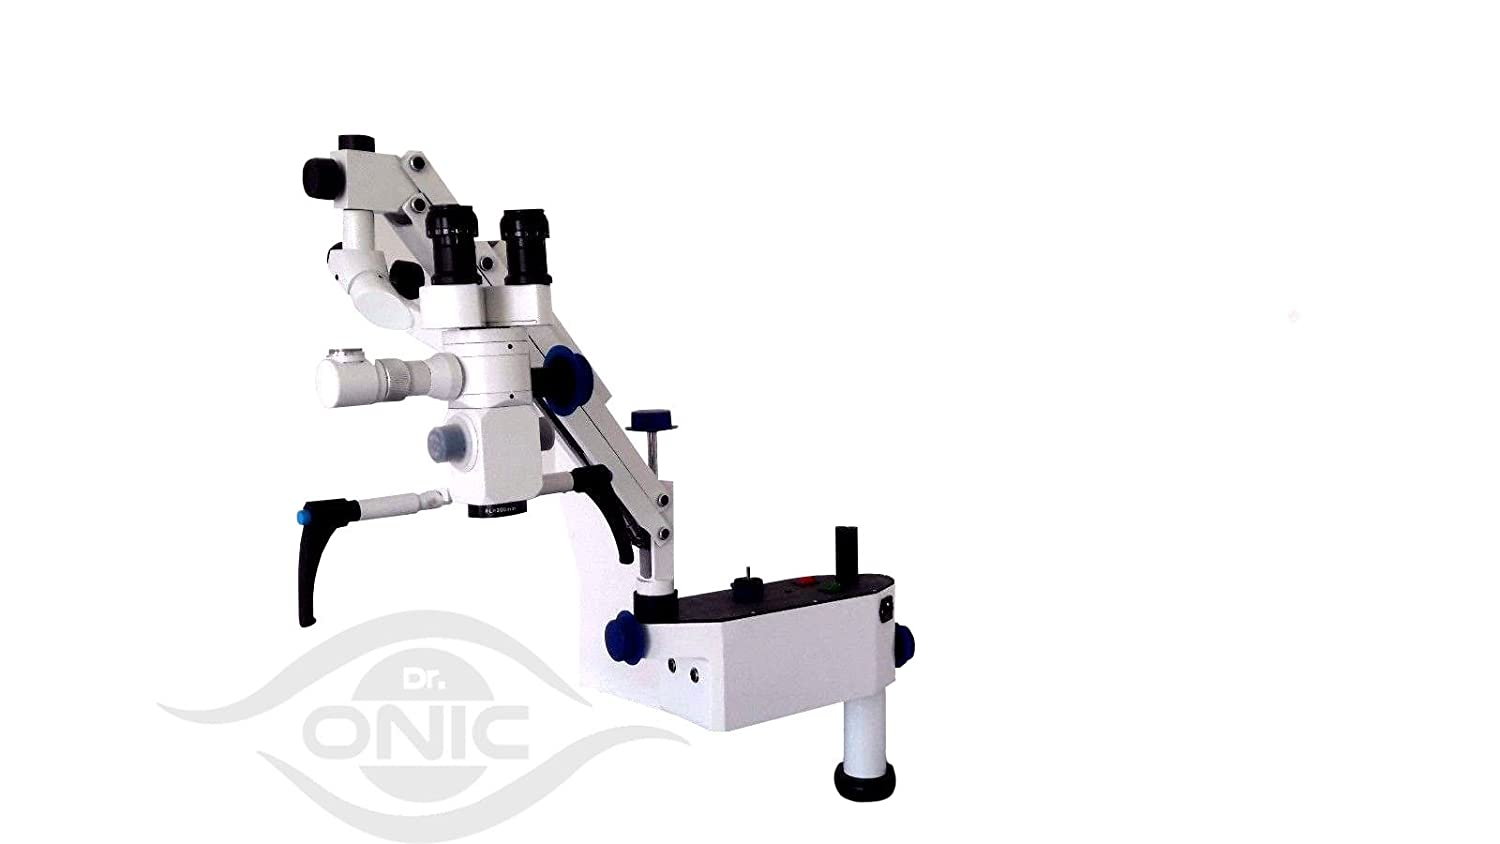 Wall Mount Ophthalmic Operating Microscope 3 Step,0-180/° Inclinable Binoculars with Advanced LED Illumination ISO CE Dr.Onic